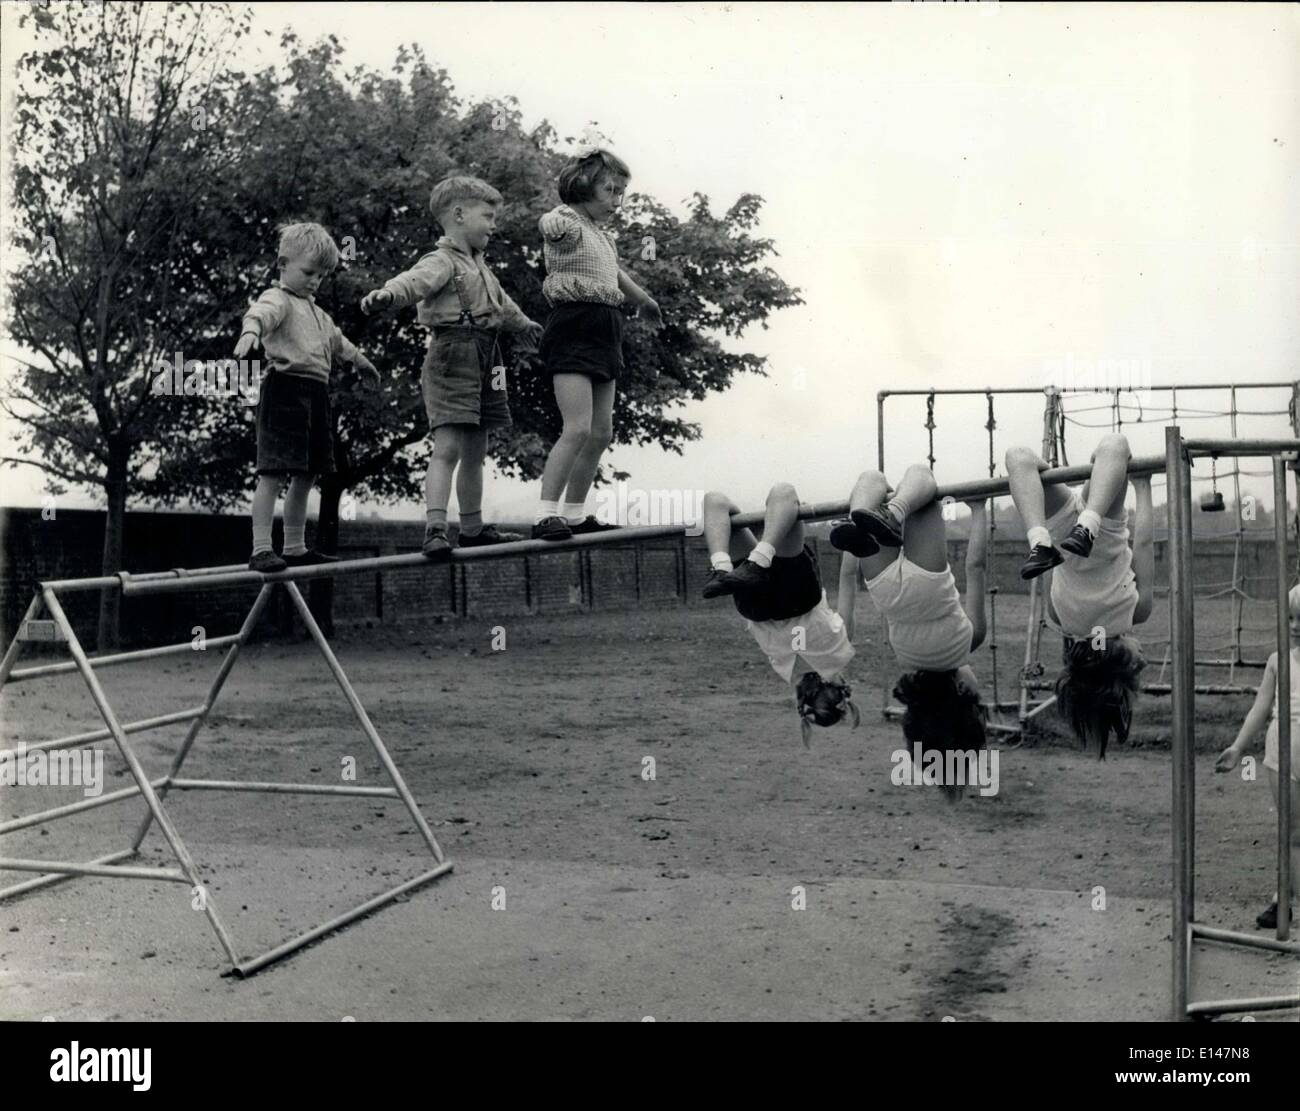 Apr. 17, 2012 - The Balance and the Swing: Some children prefer to teach themselves to 'tight rope' across - Stock Image